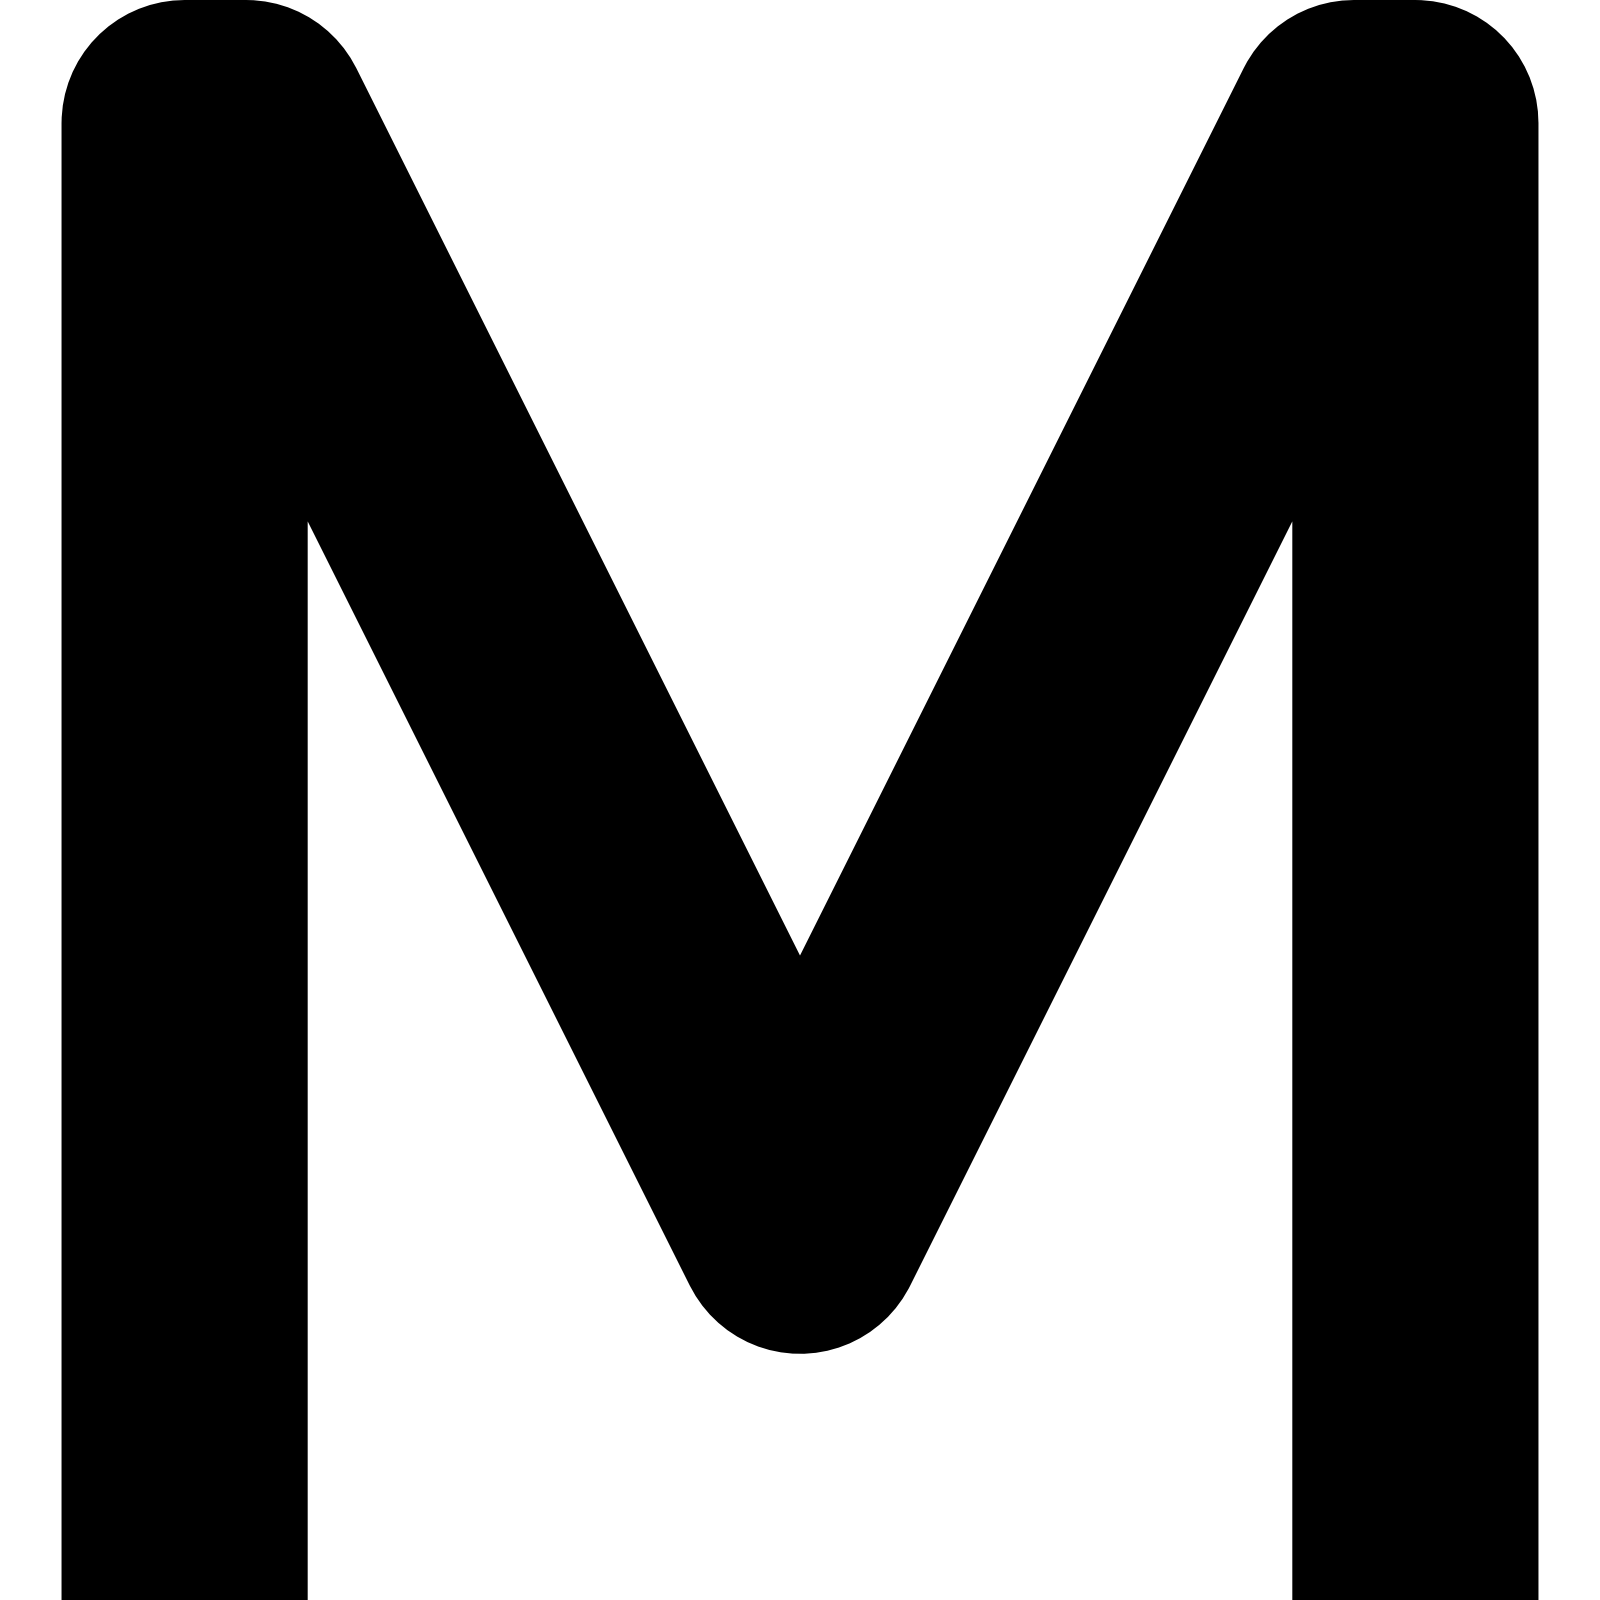 M png. Picture image